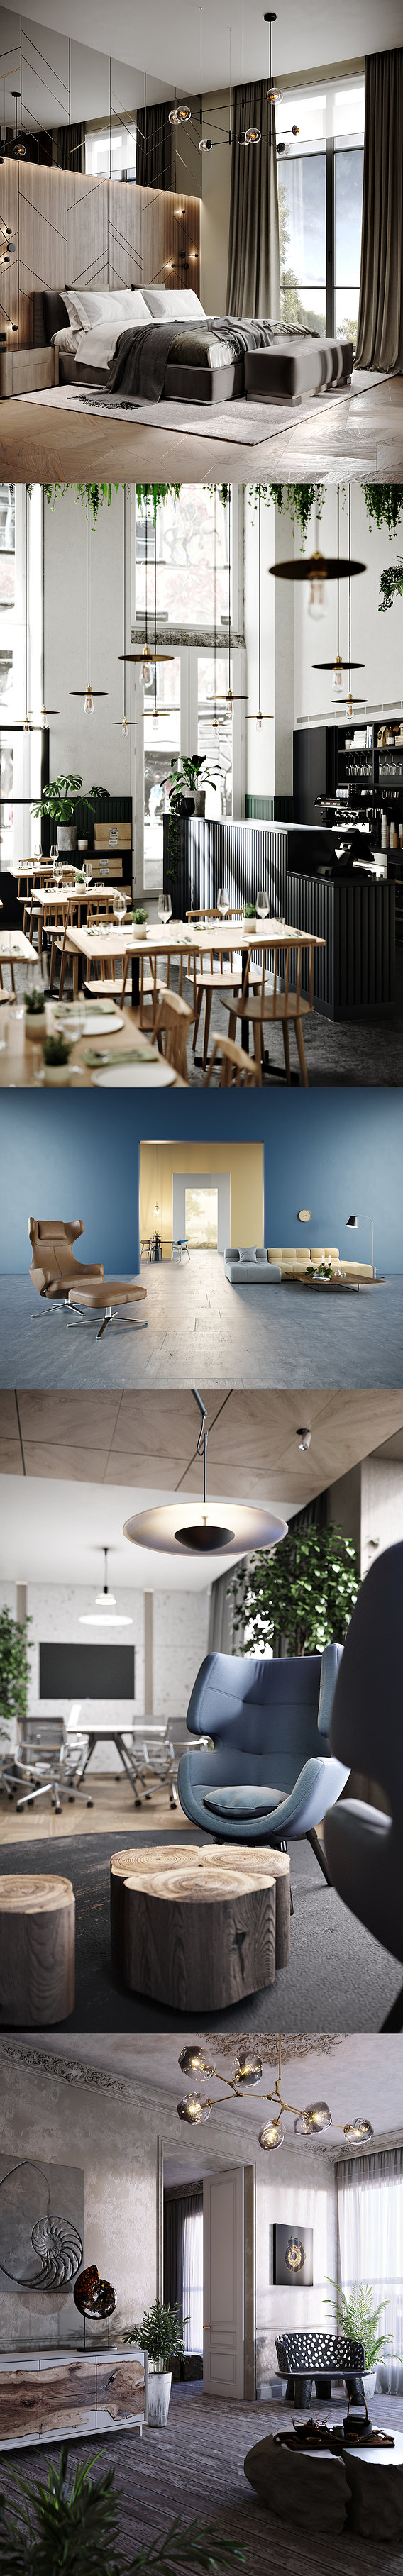 Collection of interior scenes Vol 1